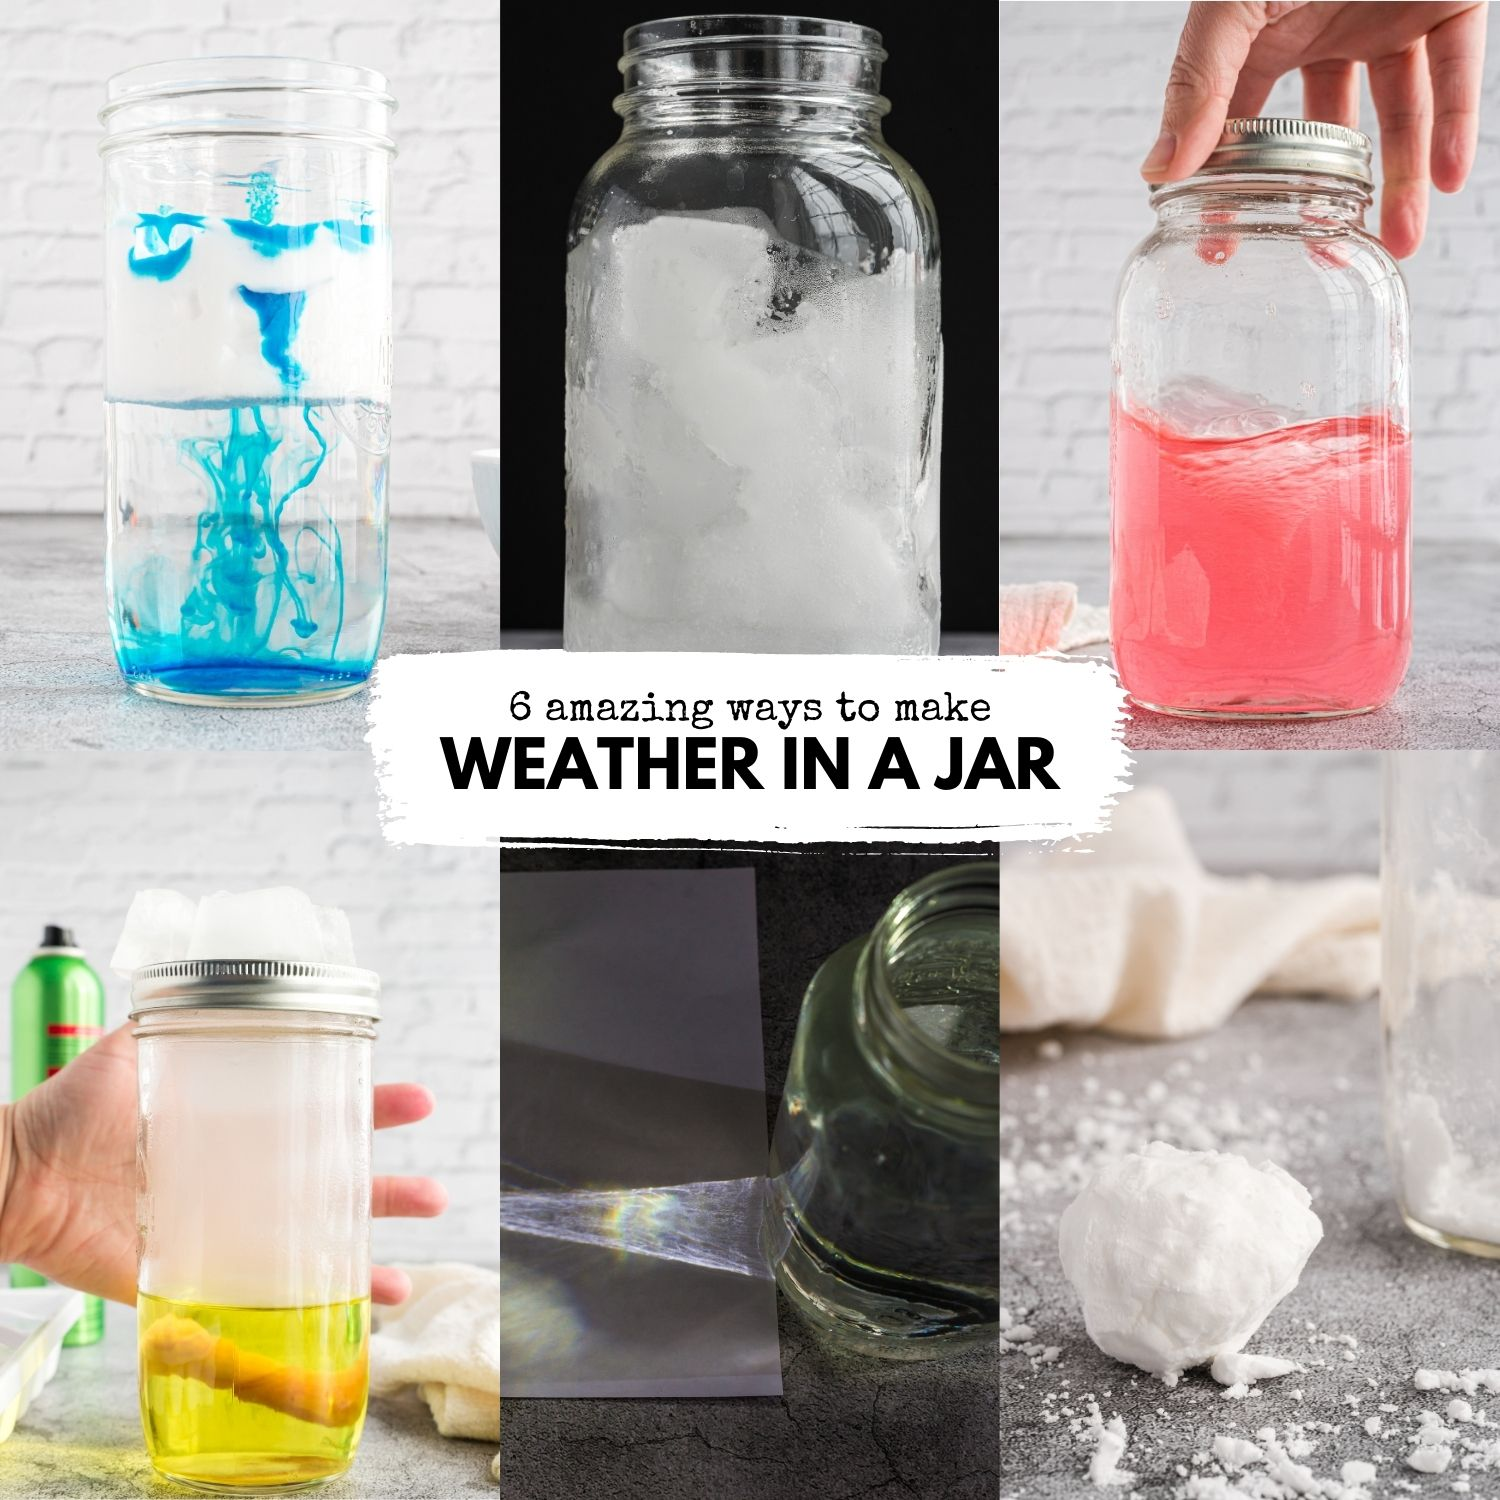 Kids will love these 6 amazing weather in a jar science experiments. Try rain in a jar, fake snow, make rainbows, clouds, tornadoes, and more!